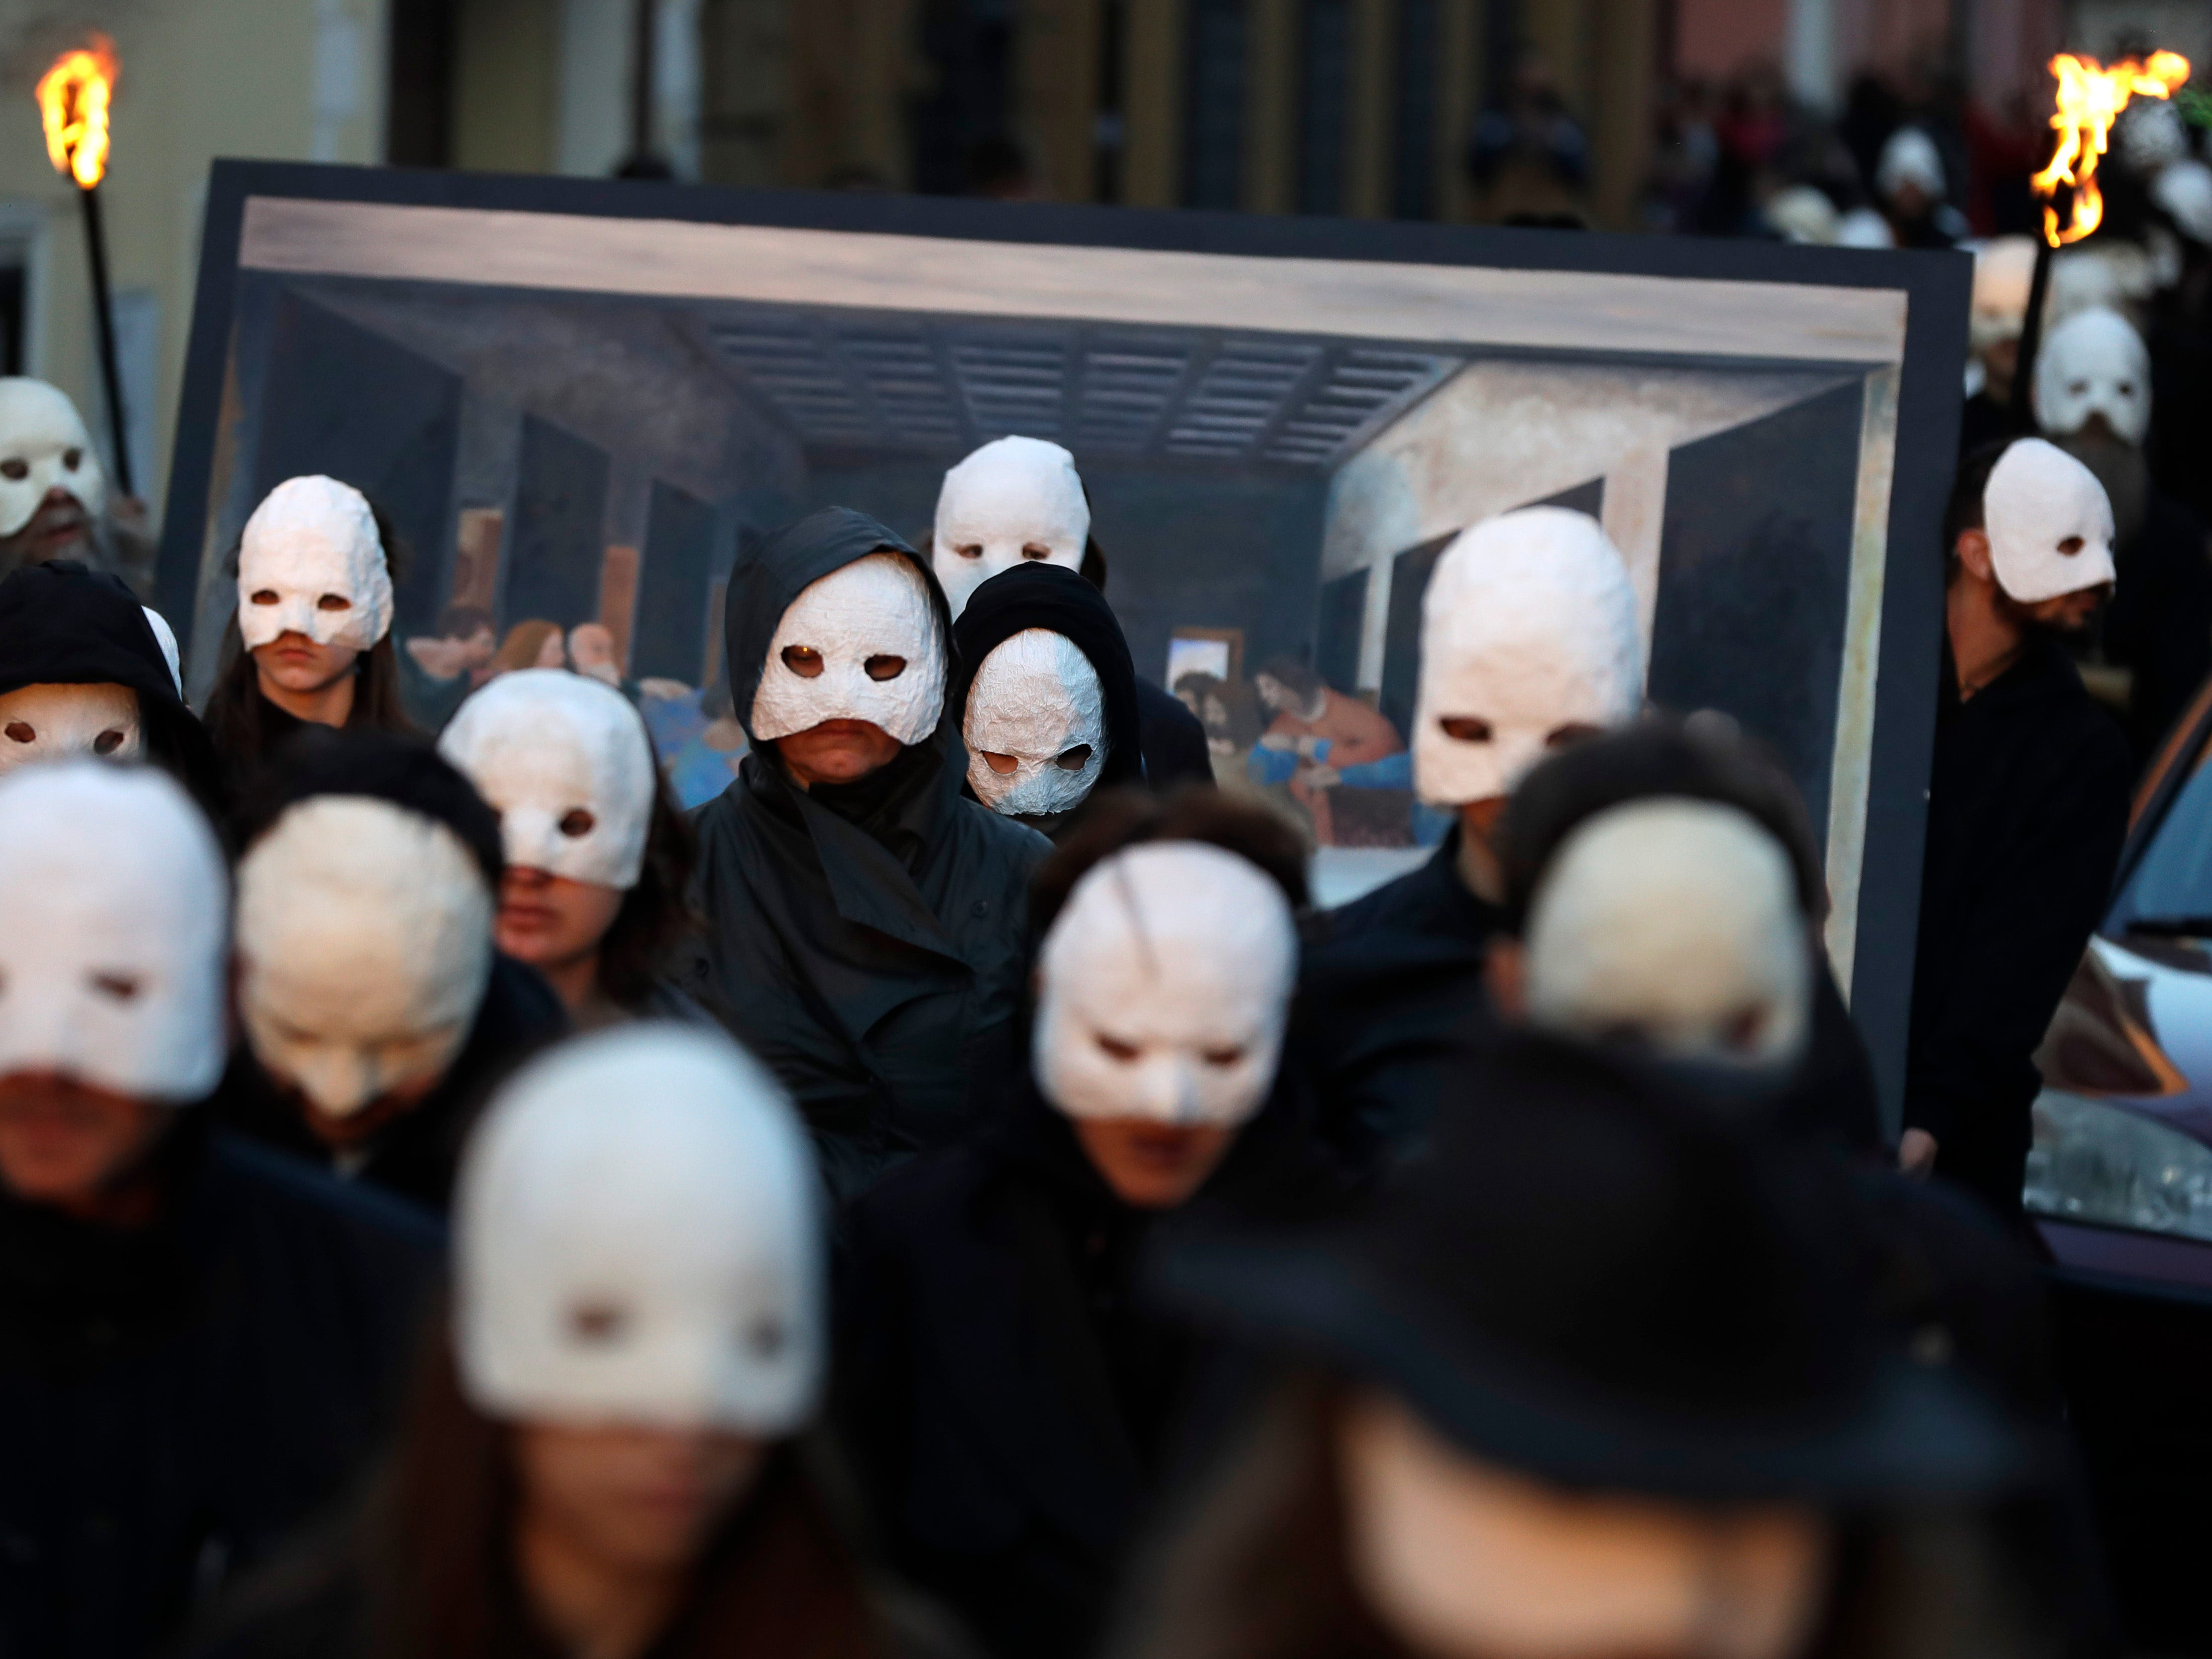 In this picture taken on Thursday, April 18, 2019, participants dressed in black, wearing masks, beating drums and pushing small carts that make a synchronized and loud sound take part in an Easter procession through the streets of Ceske Budejovice, Czech Republic.